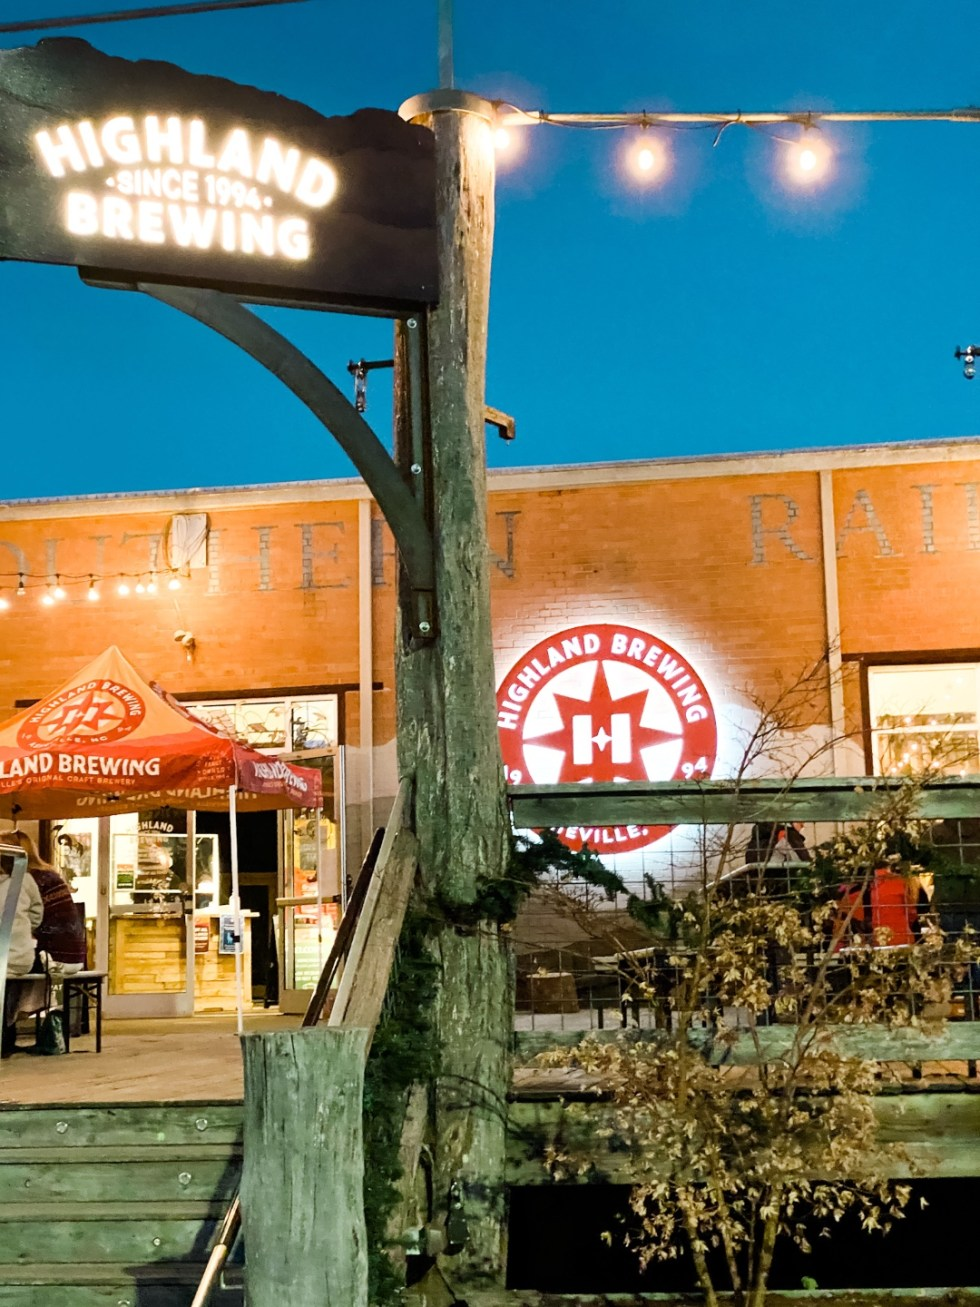 Christmas in Asheville: a Weekend Getaway During the Holidays - I'm Fixin' To - @imfixintoblog |Christmas in Asheville NC by popular NC lifestyle blog, I'm Fixin' To: image of Highland Brewing Co.